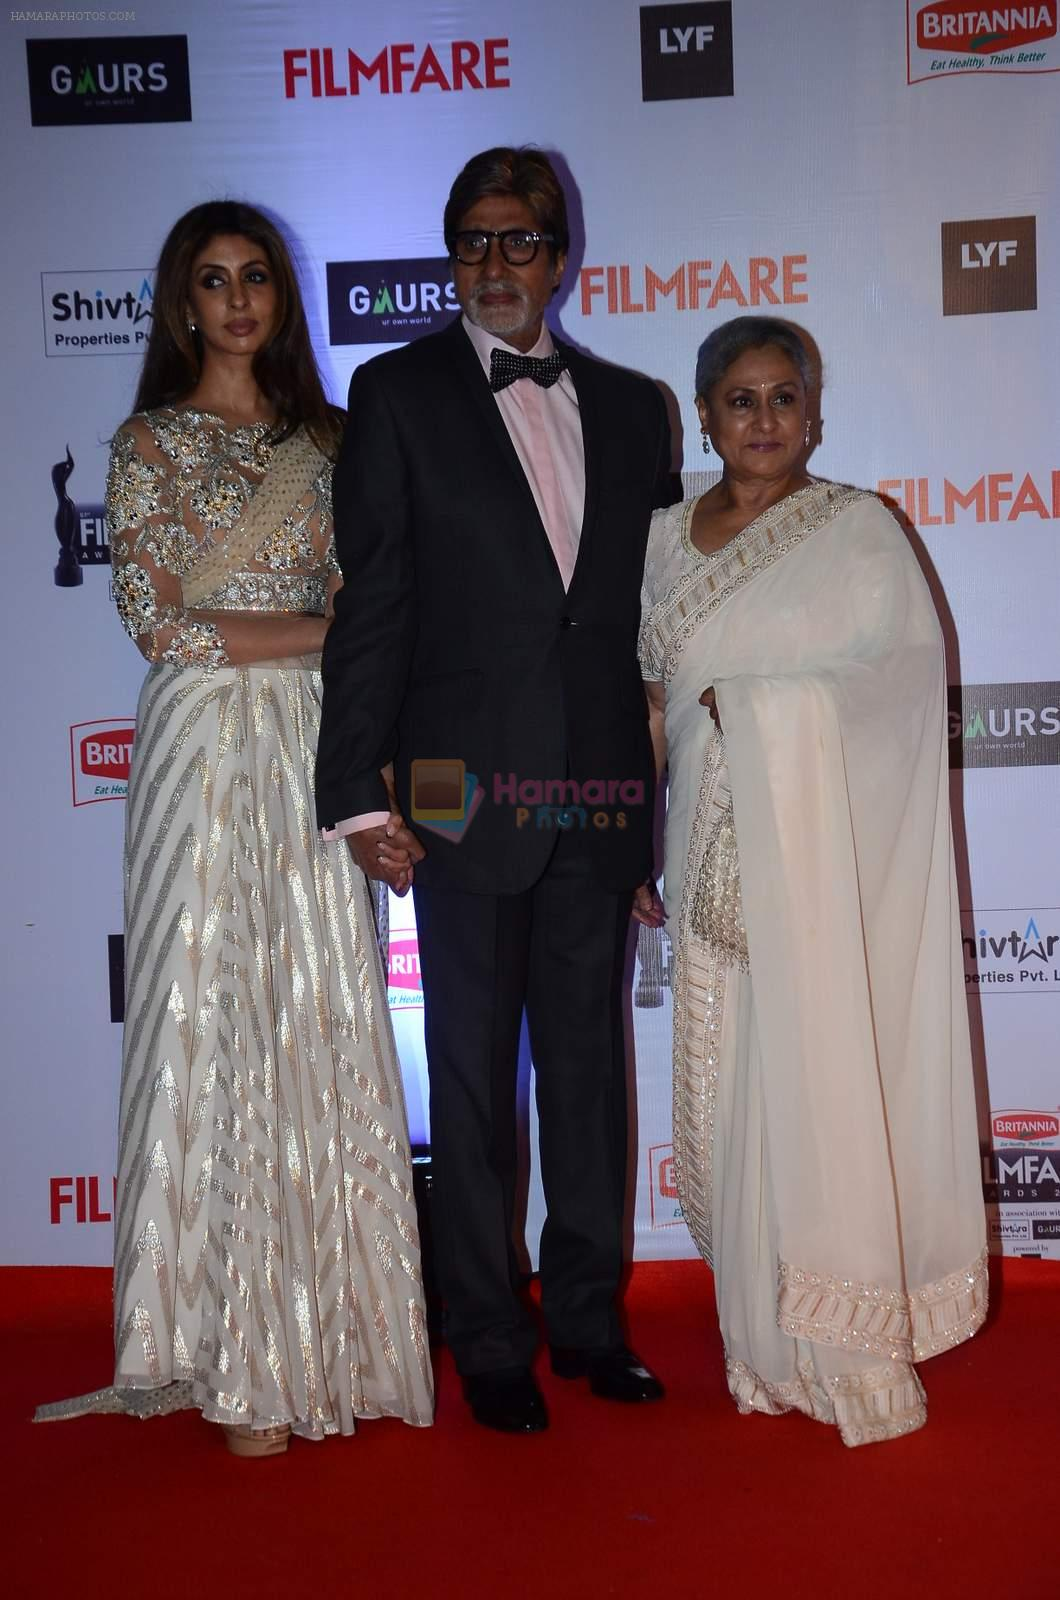 Shweta Nanda, Amitabh Bachchan, Jaya Bachchan at Filmfare Awards 2016 on 15th Jan 2016